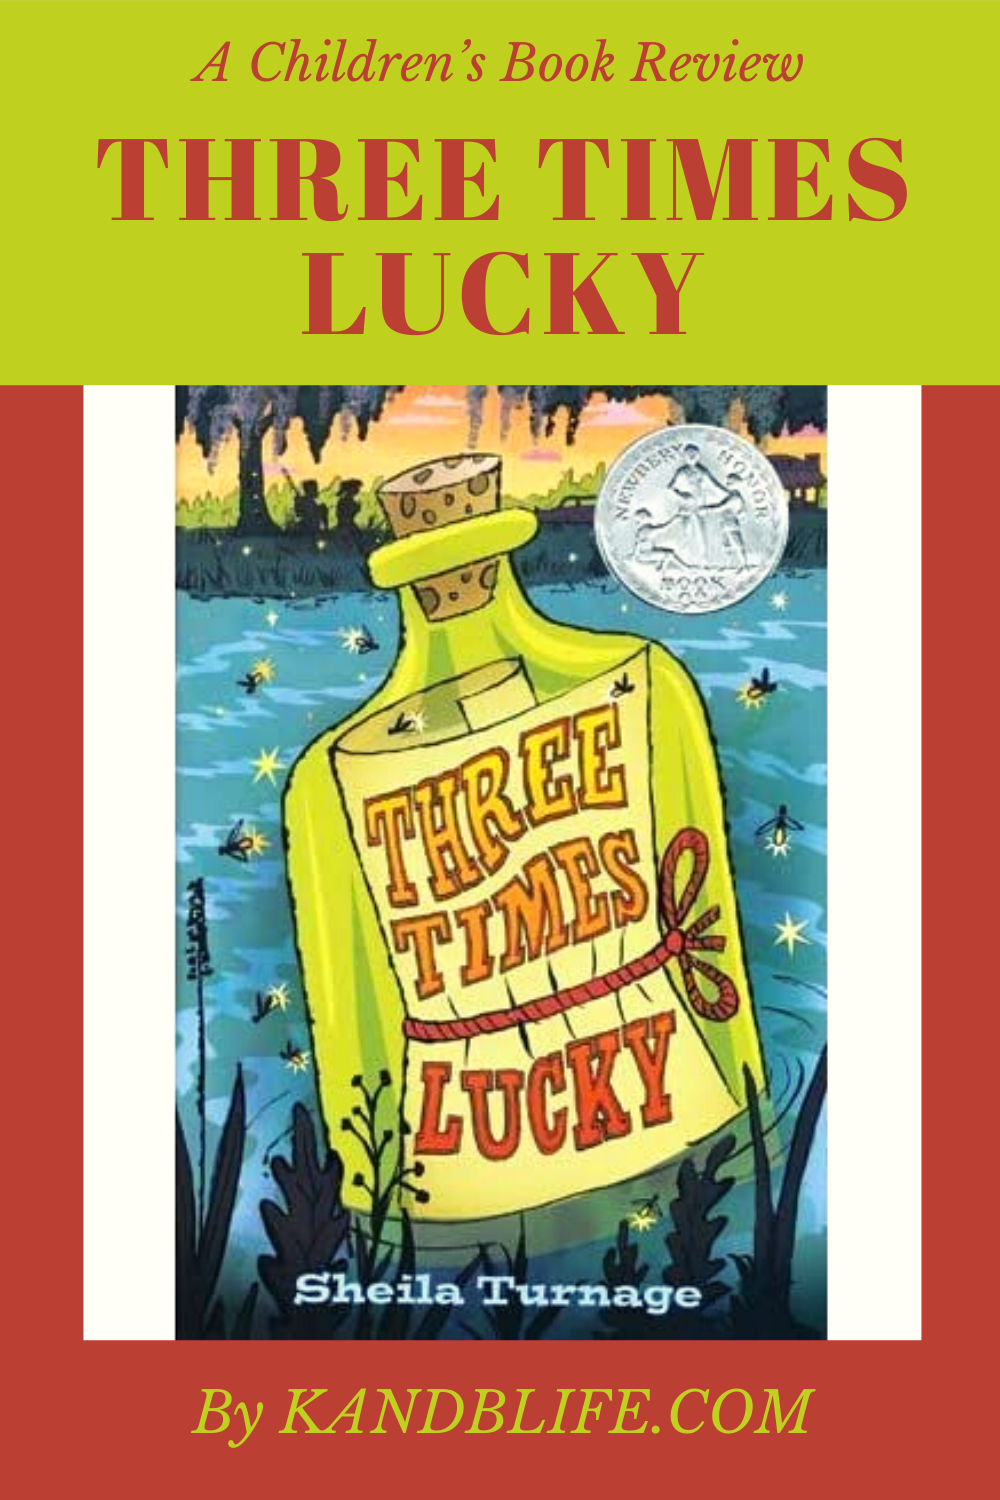 Book Cover for the Children's Book Review of Three Times Lucky by Sheila Turnage.